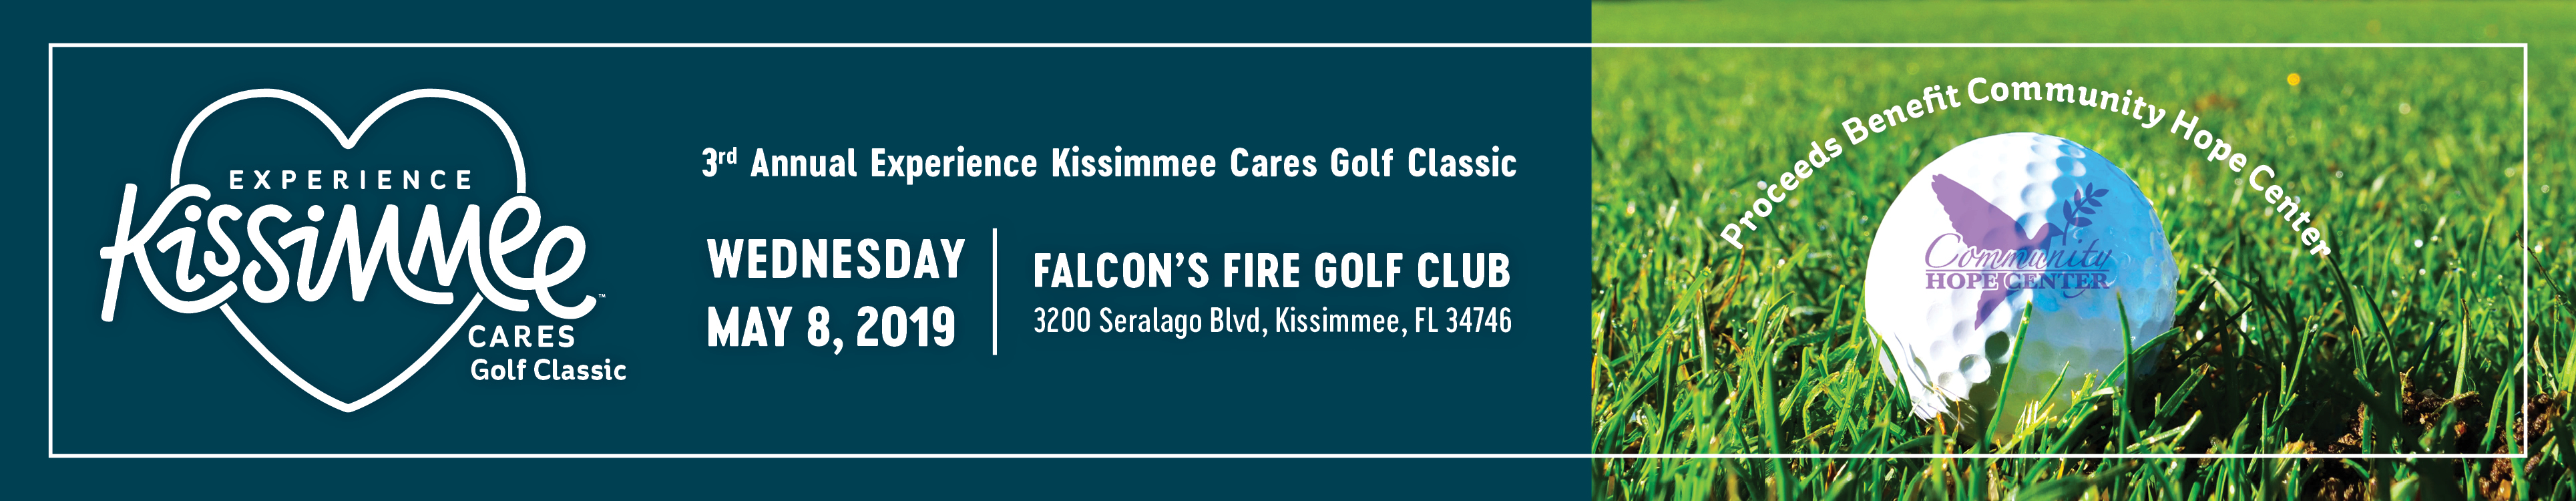 Kissimmee Cares Golf Classic 2019